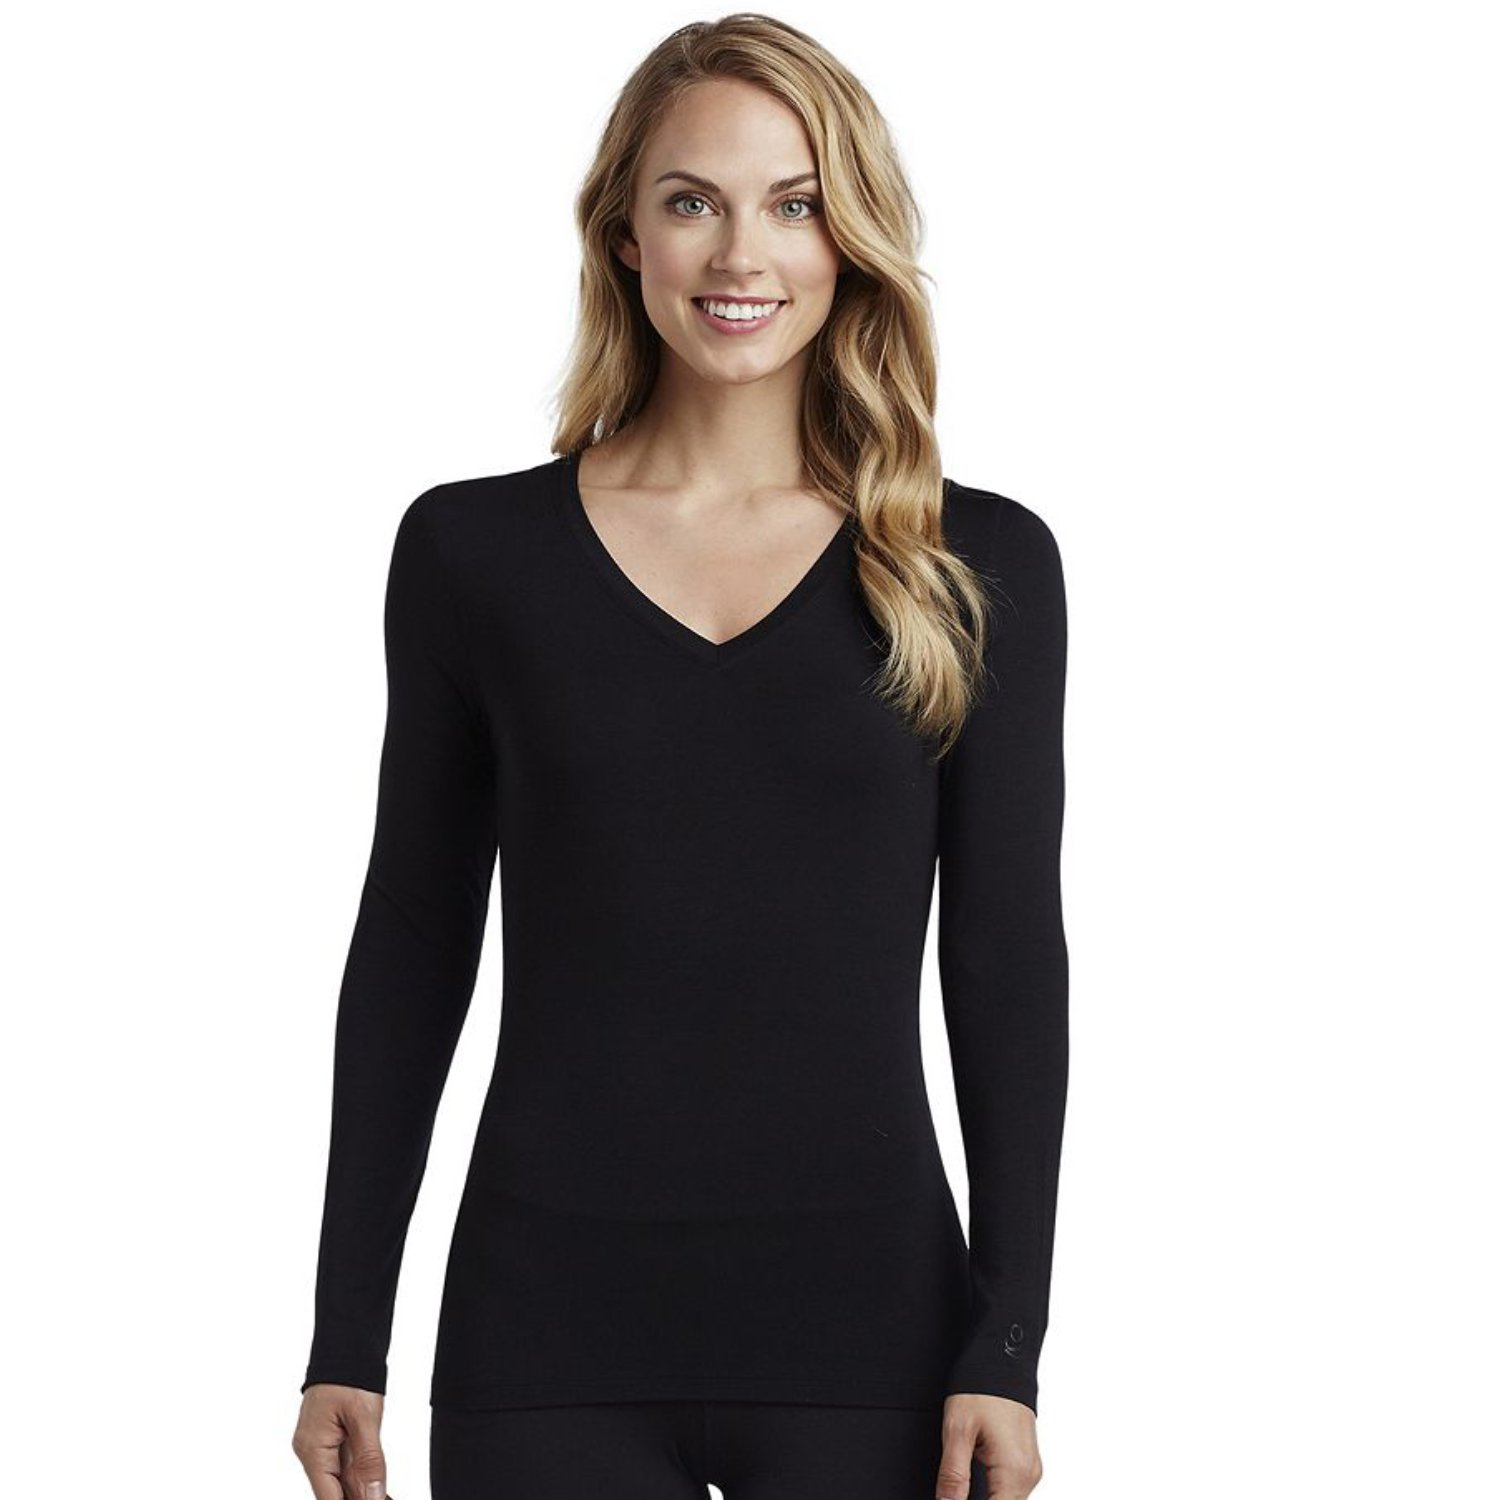 Fruit of the Loom Women's Core Performance Thermal Top (Large, Black)